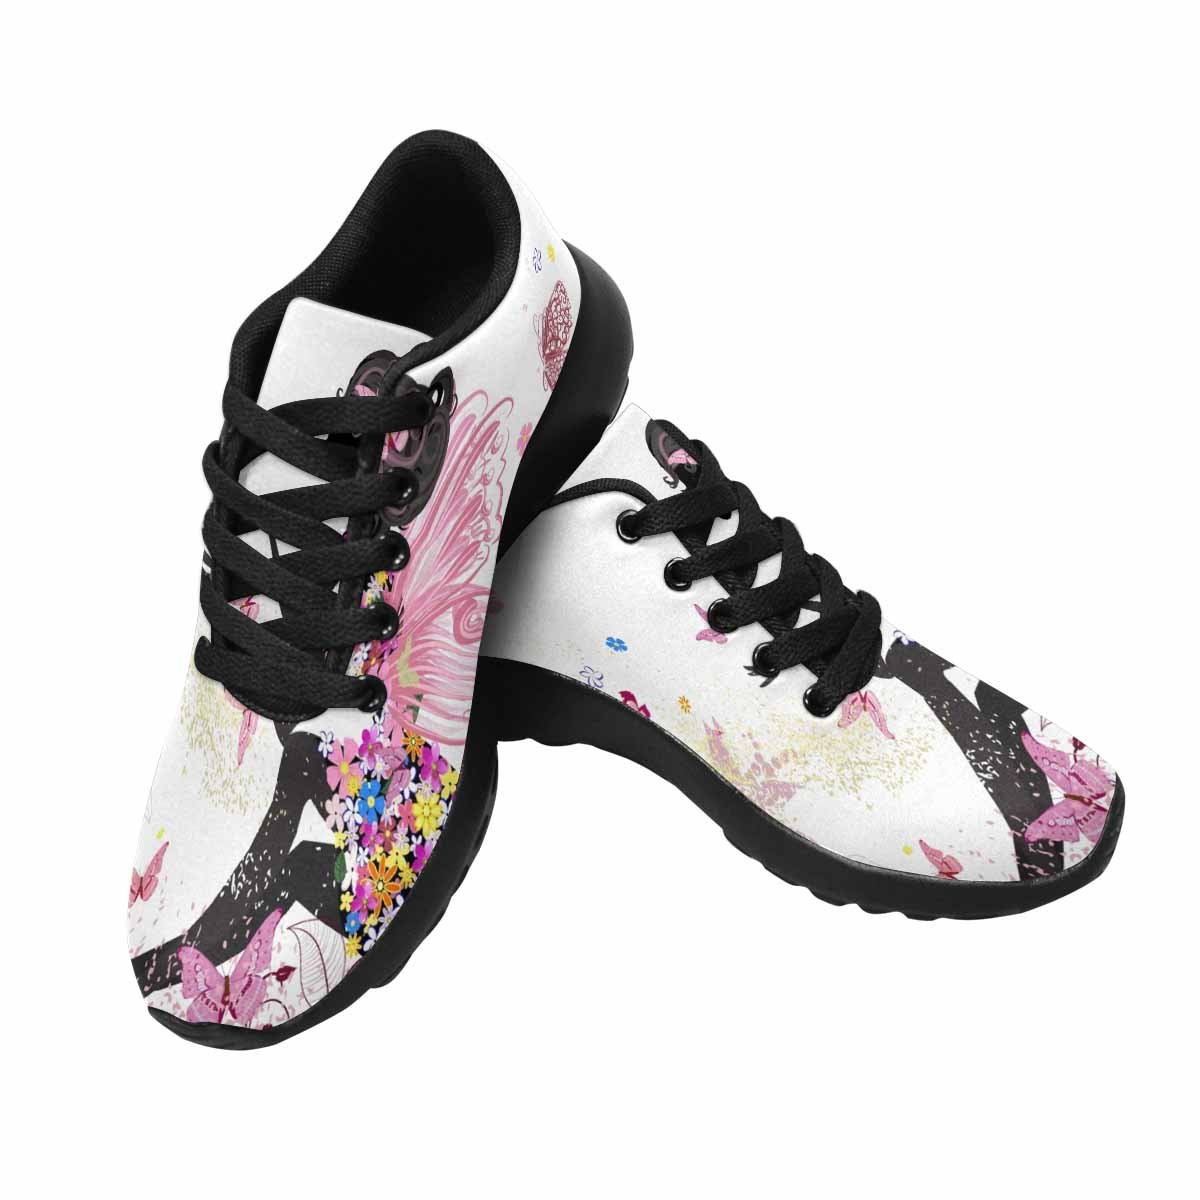 InterestPrint Women's Go Easy Walking Comfort Sports Athletic Shoes Flower Fairy 7 B(M) US